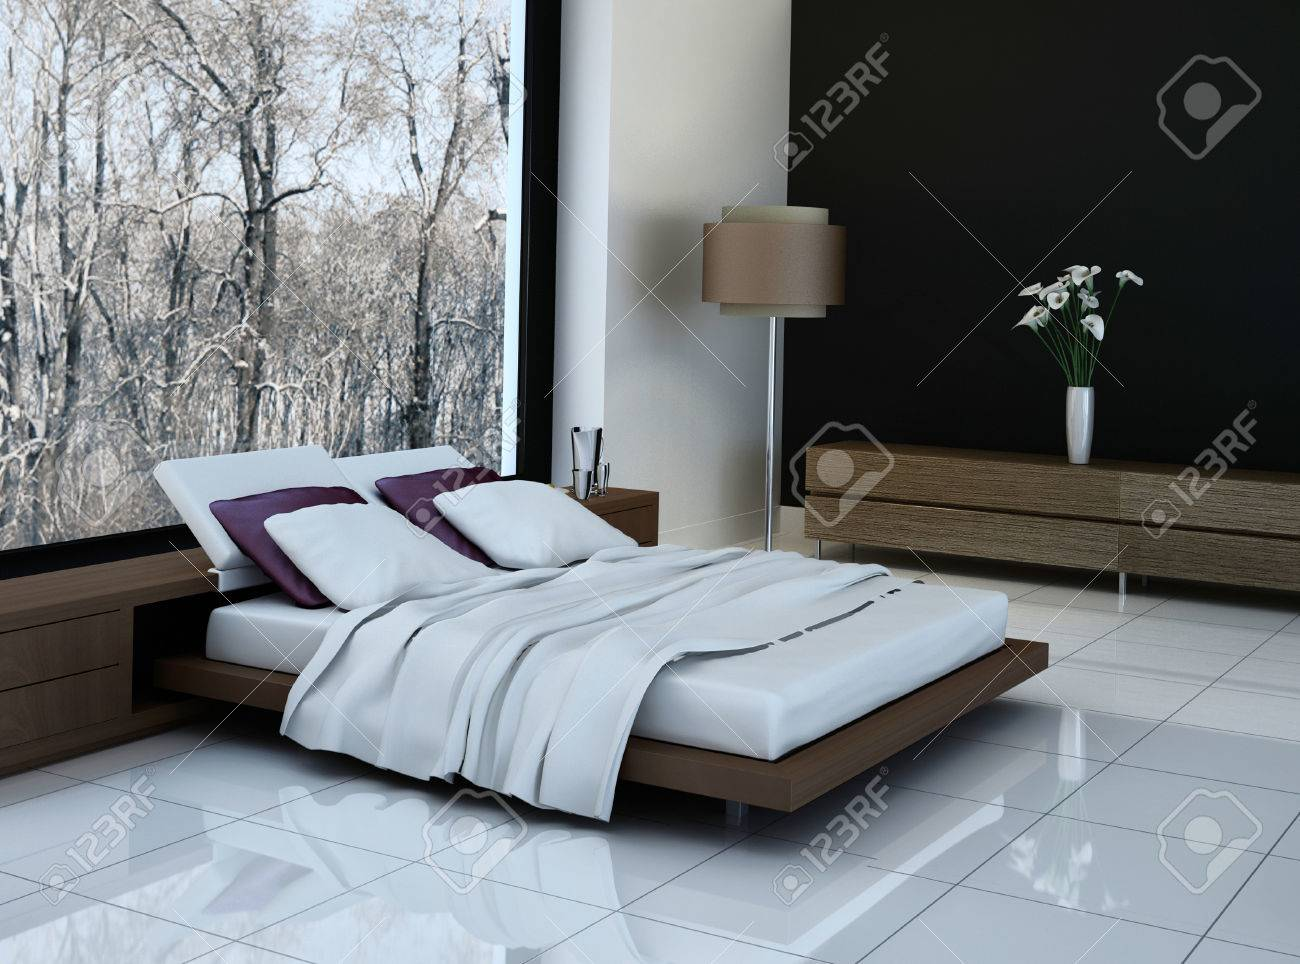 Ultra Modern Bed ultramodern bedroom interior with double bed against panorama